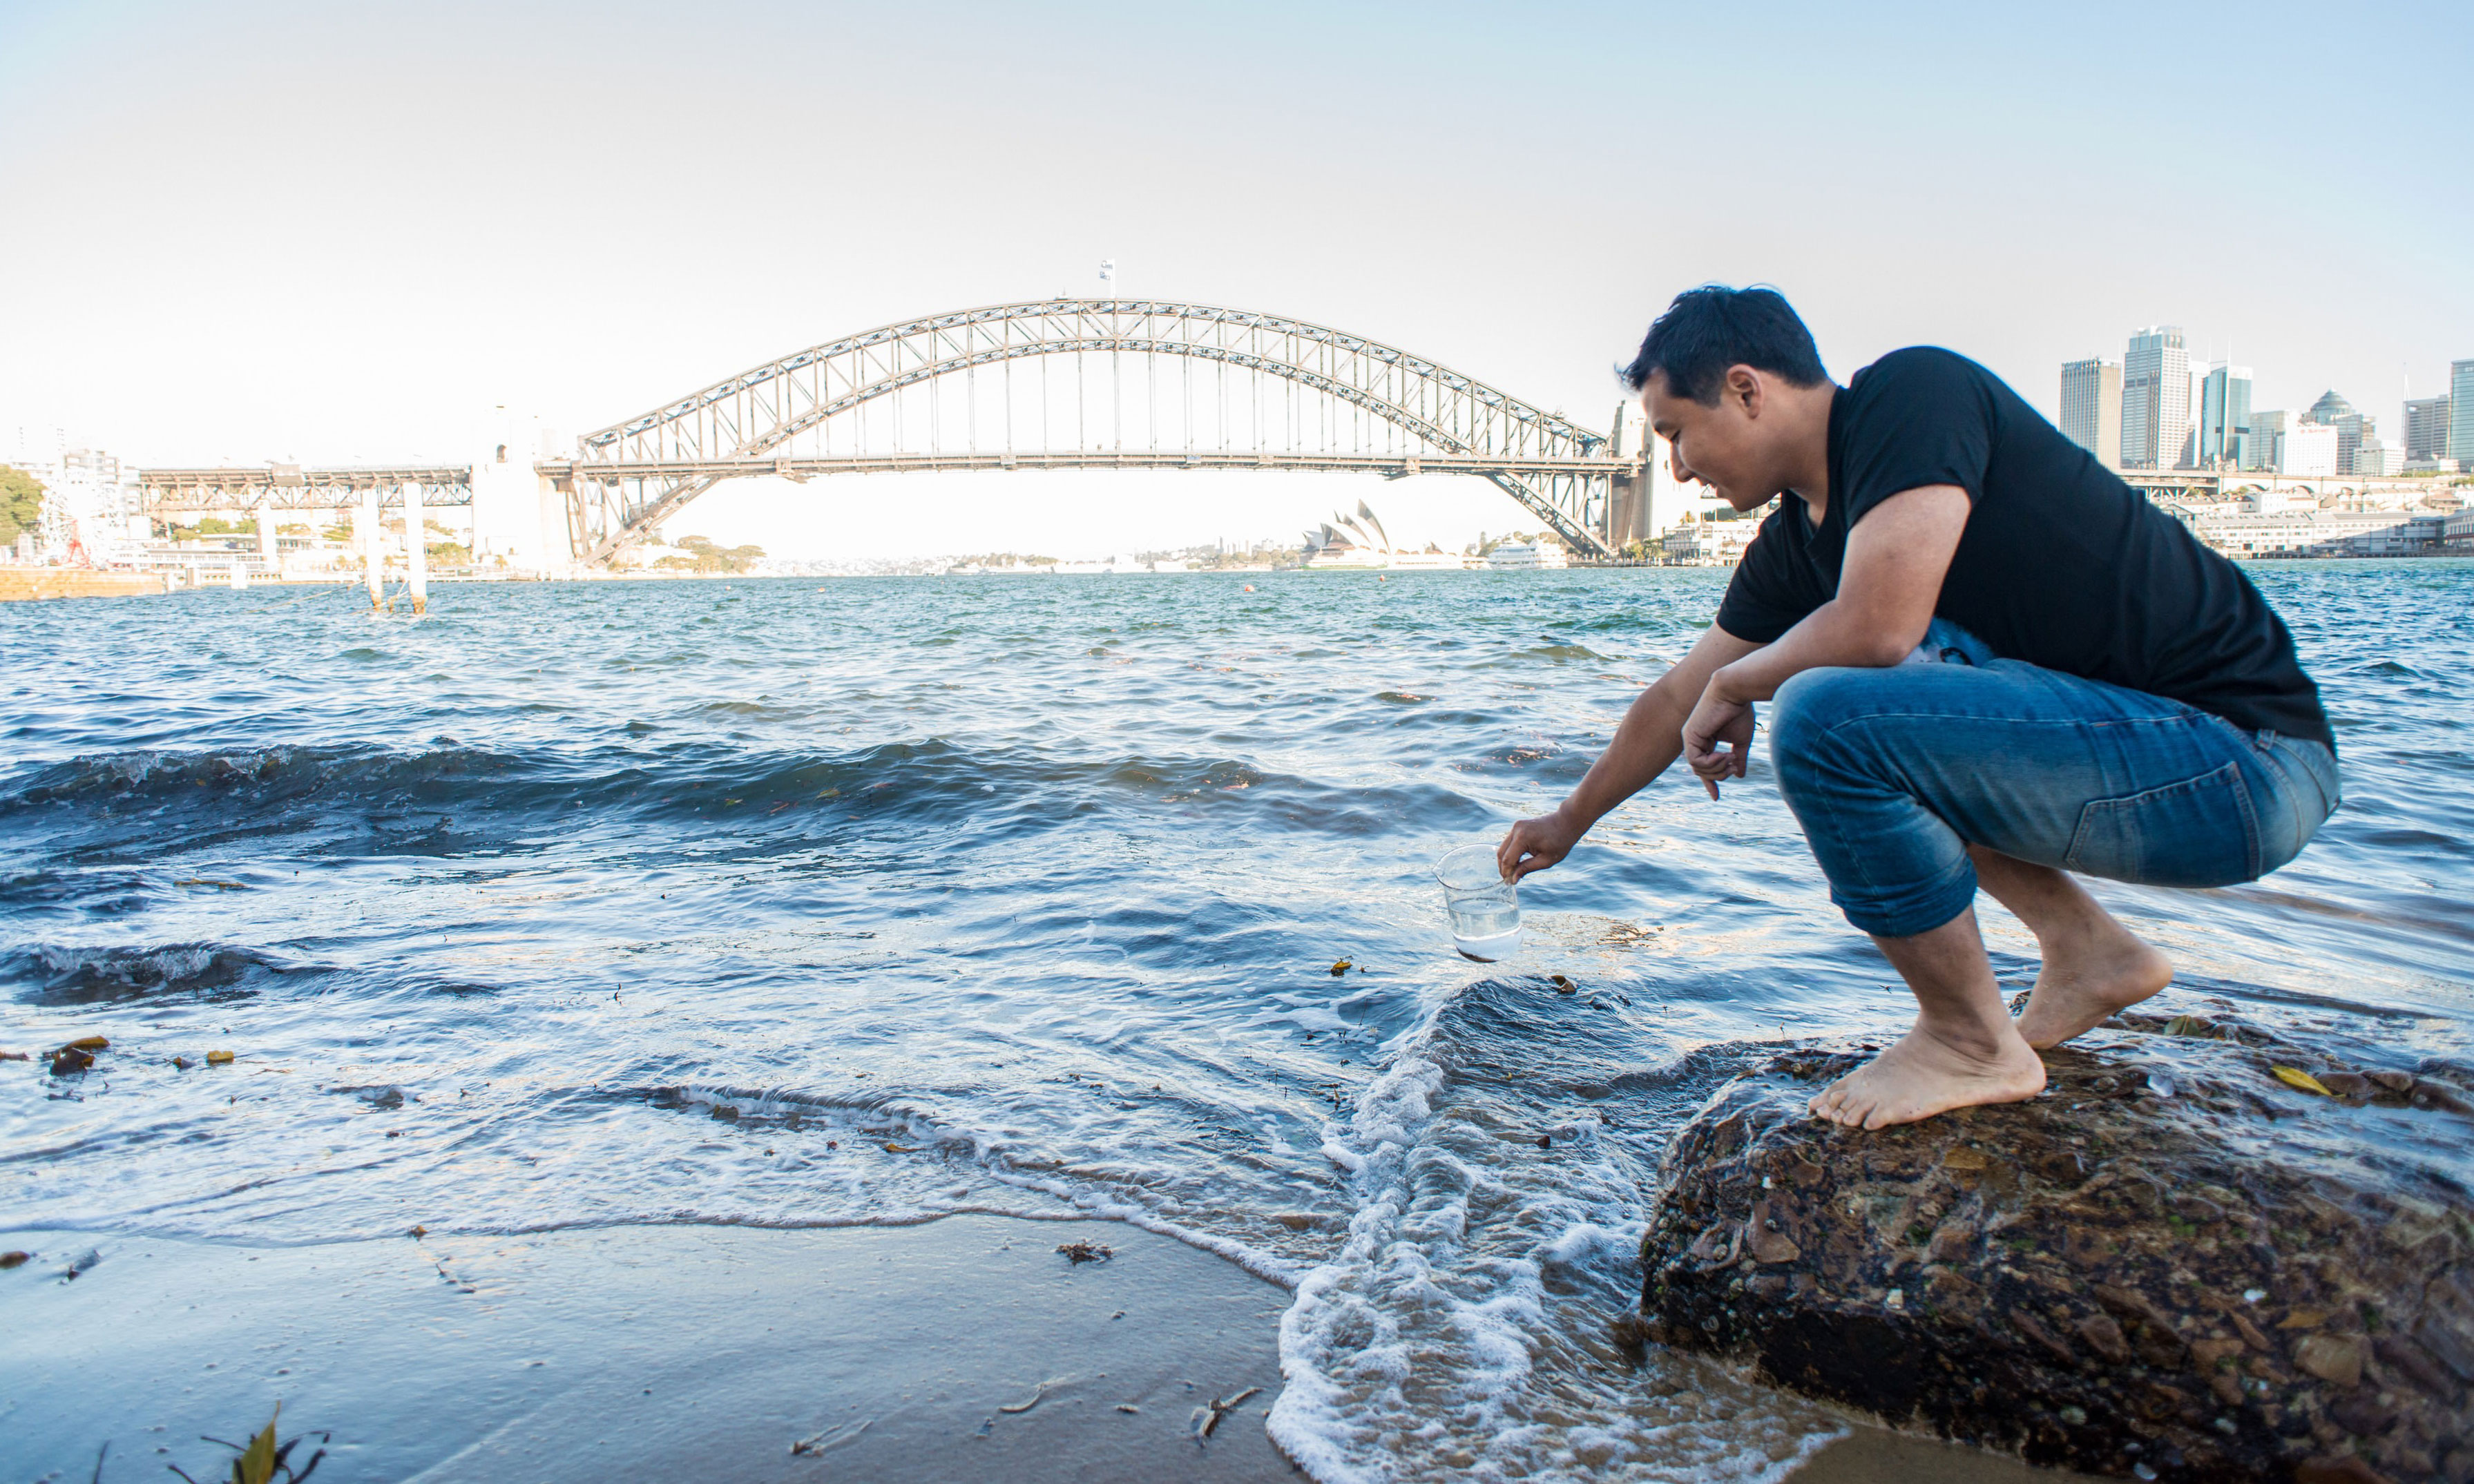 Dr Seo collecting a water sample from Sydney Harbour.